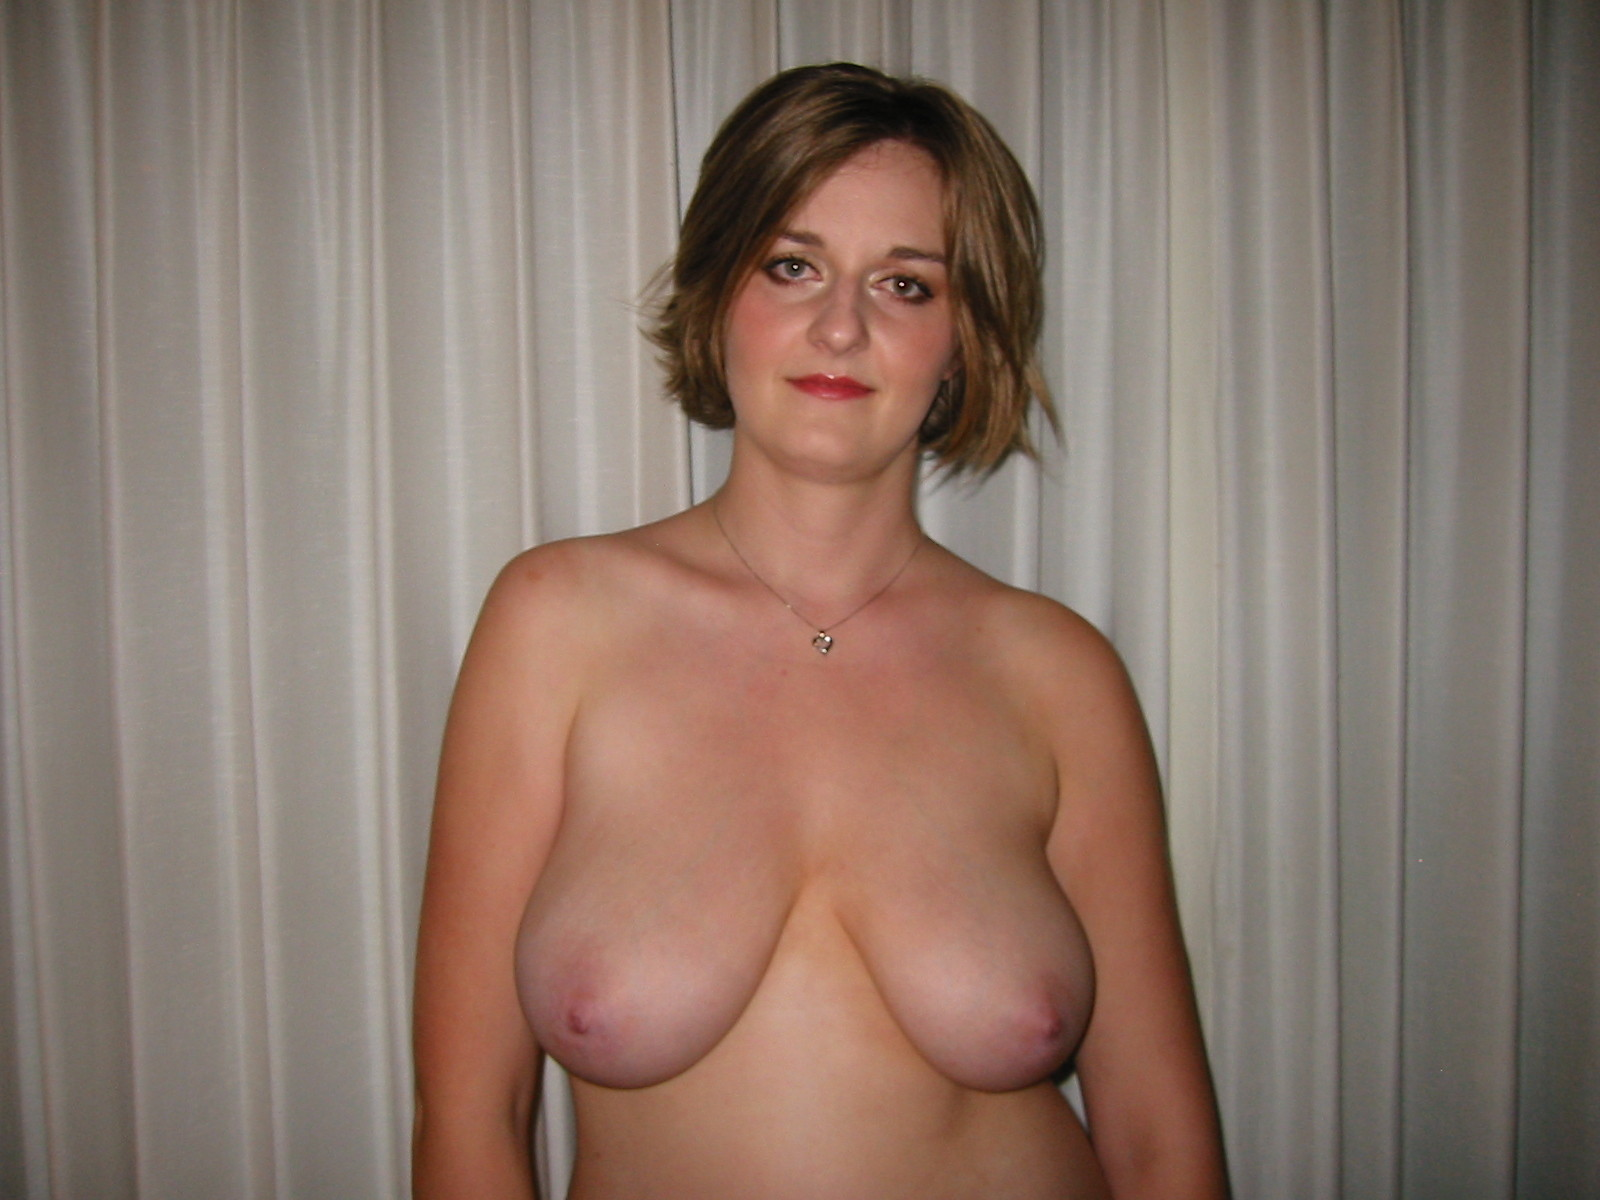 Mature naked boobs opinion you